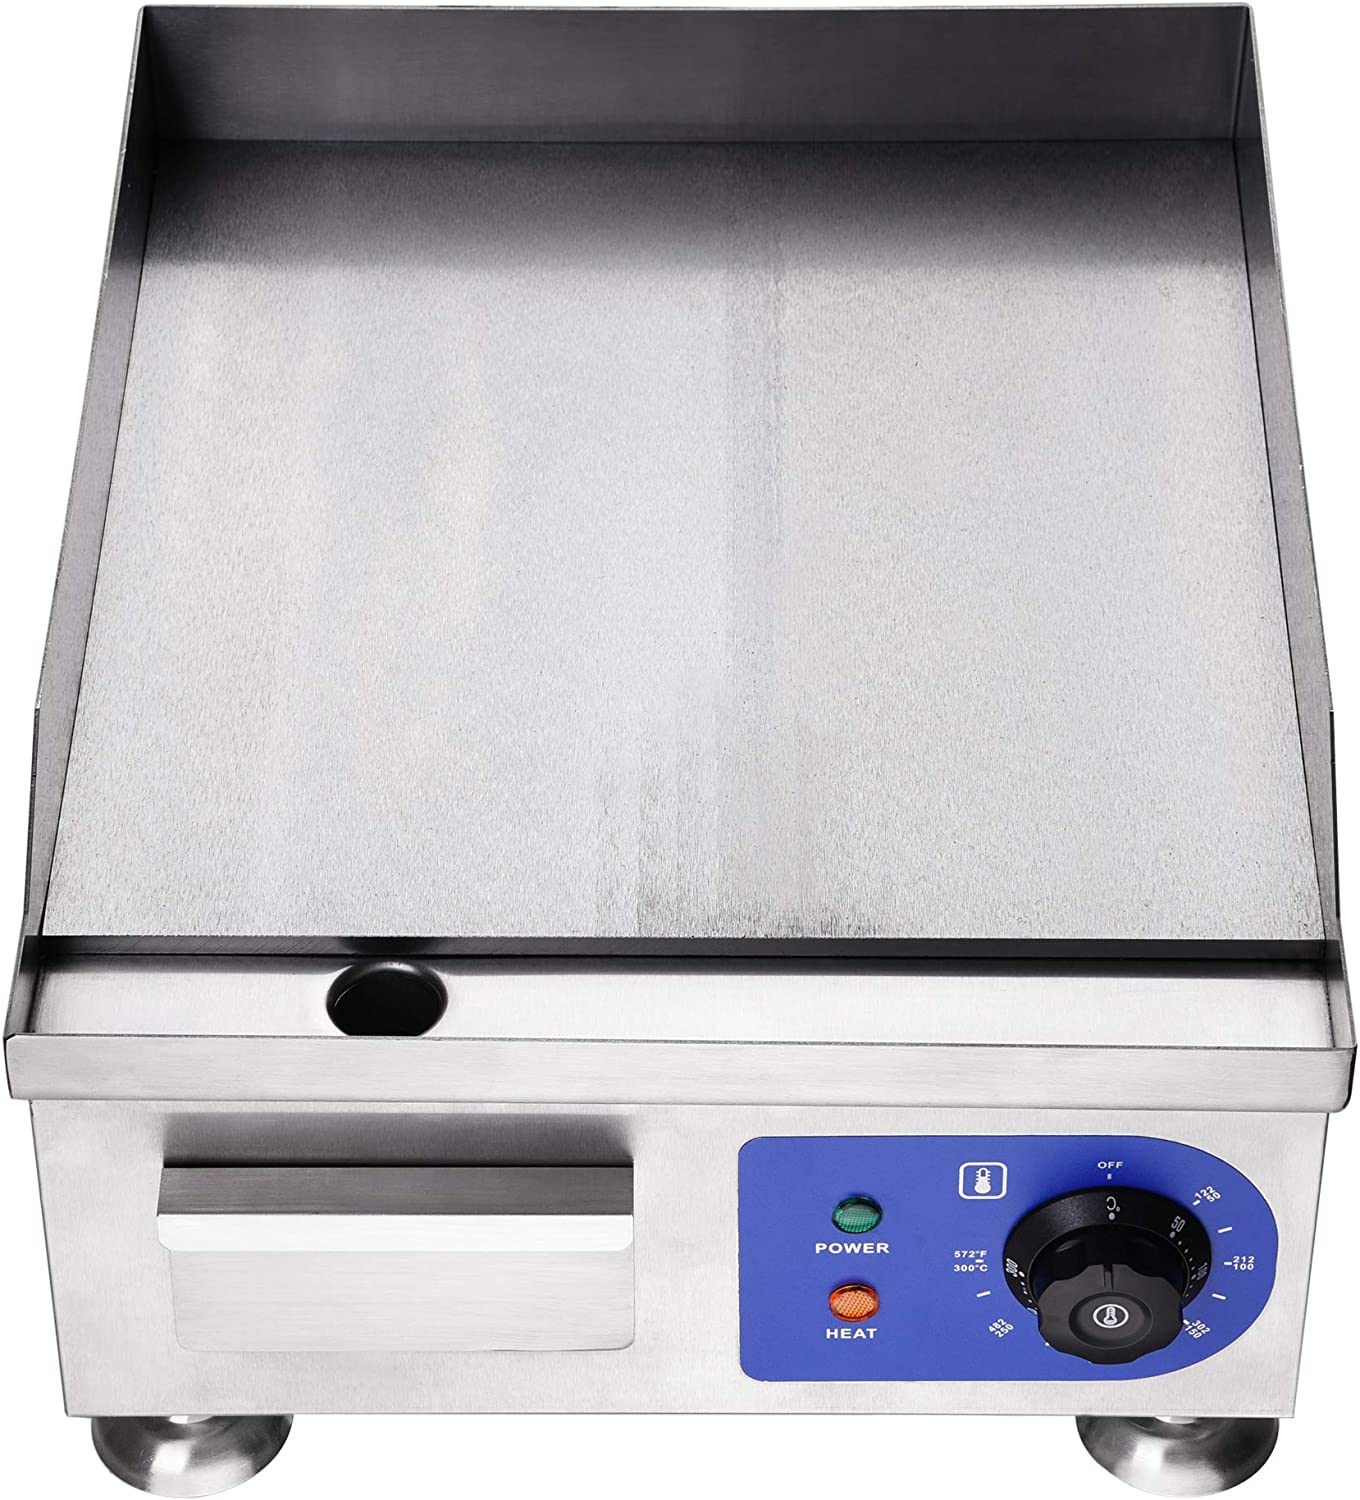 WeChef 14 Electric Countertop Griddle Stainless Steel Adjustable Temp Control Commercial Restaurant Grill 1500W